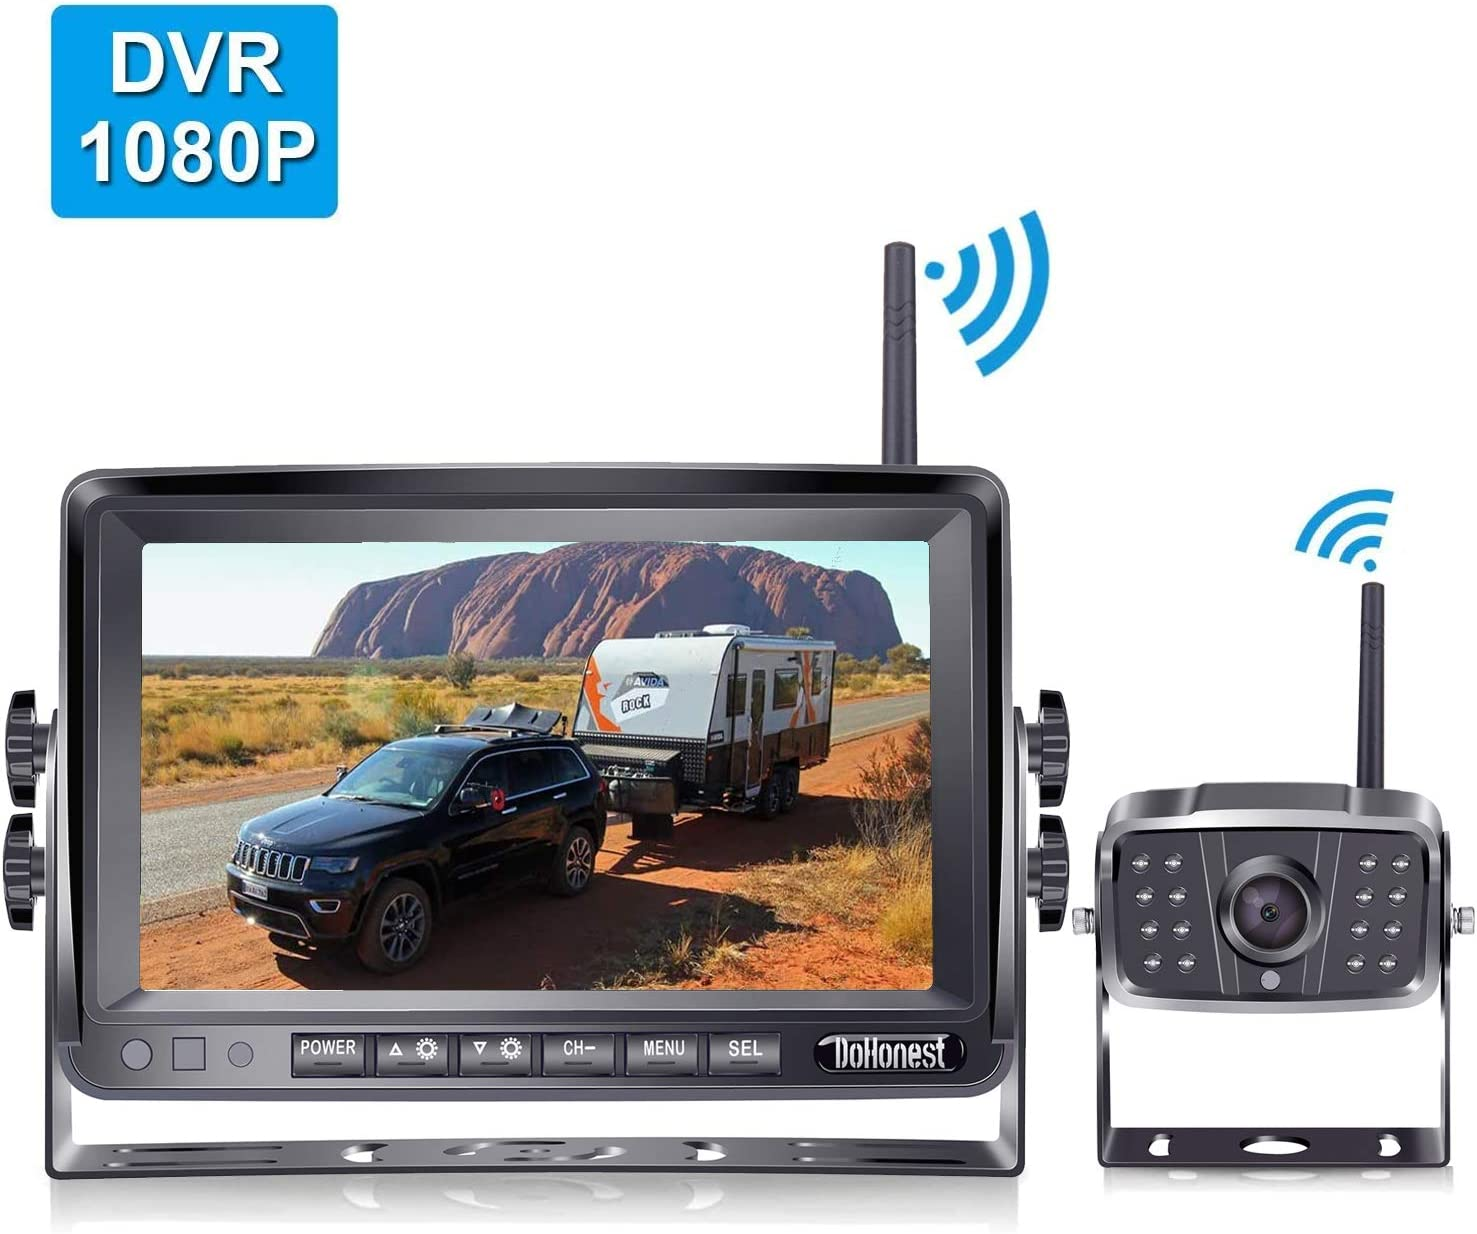 FHD 1080P Digital Wireless Backup Camera and 7'' DVR Monitor Support Dual/Quad Split Screen for Trailers,Trucks,RVs,5th Wheels Highway Observation System IP69K Waterproof Guide Lines On/Off